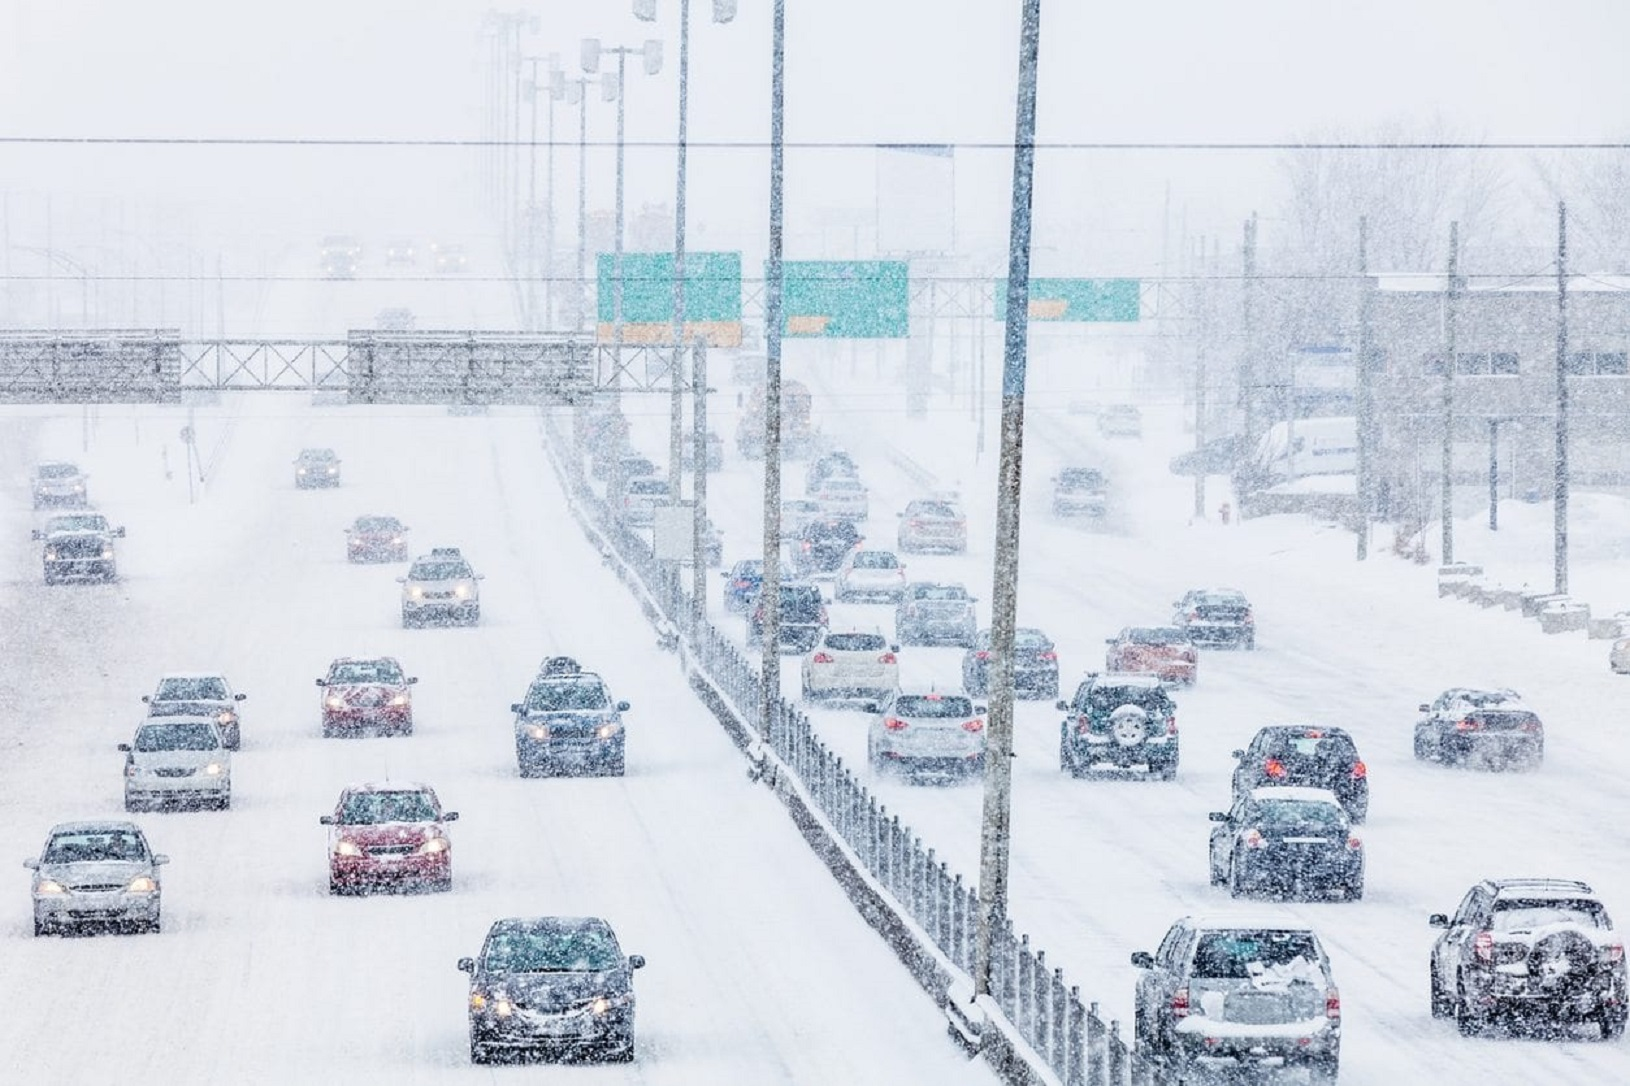 Tips For Driving On Snow And Icy Roads Of Toronto